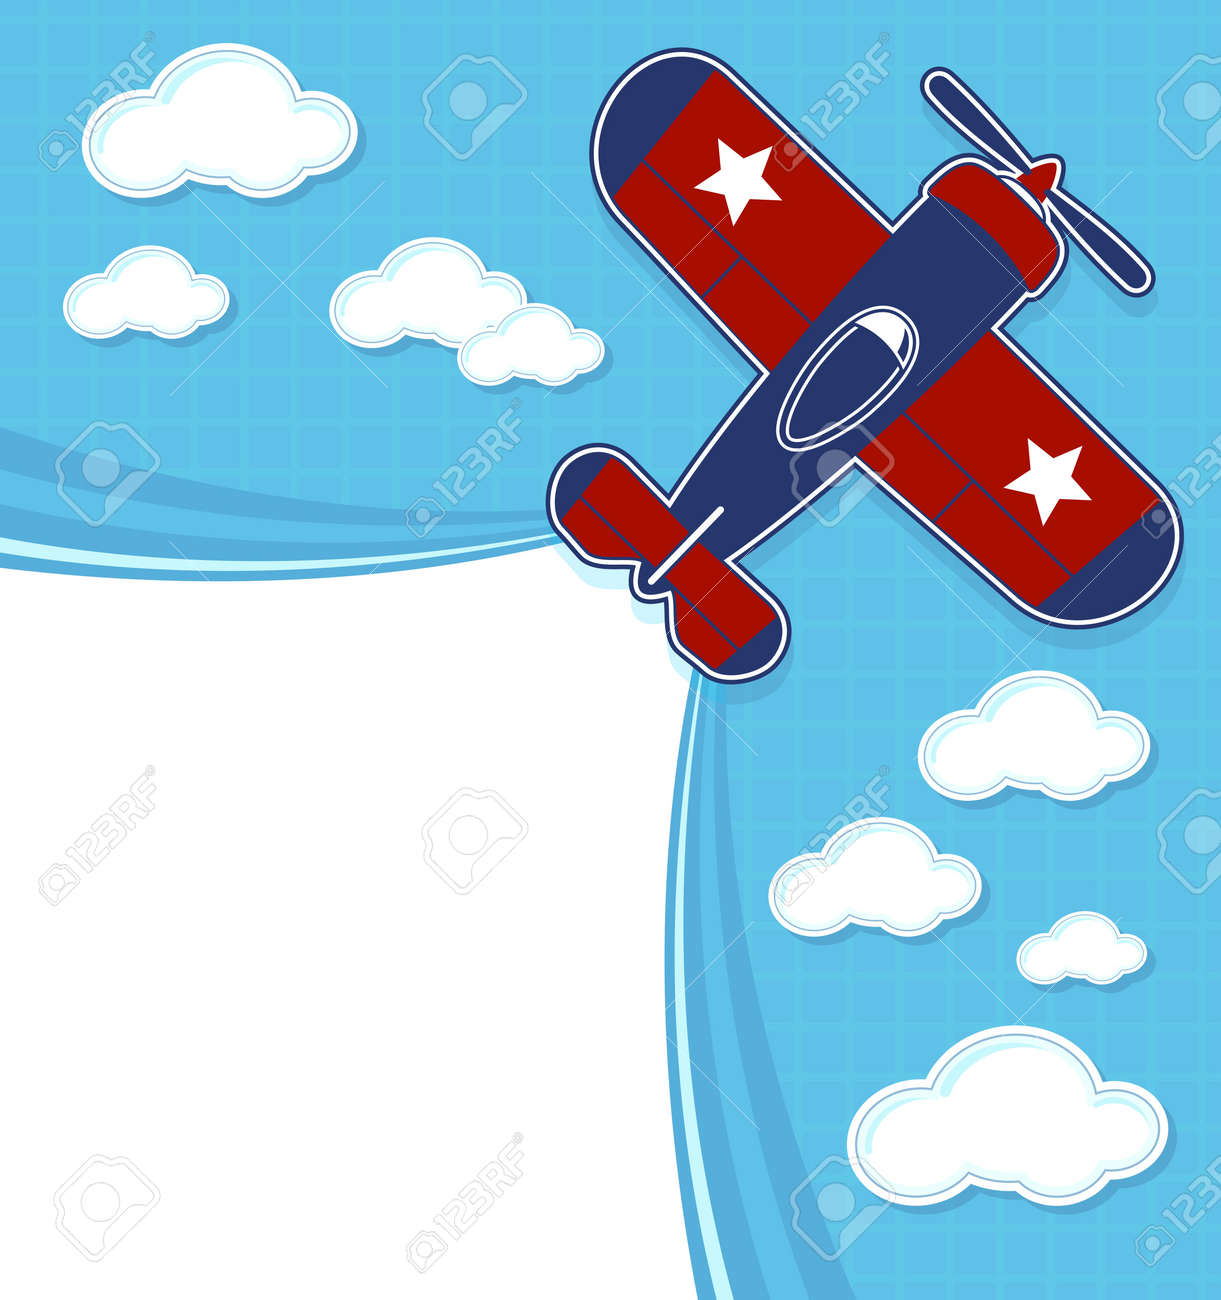 funny airplane cartoon with blank contrail for copy space on